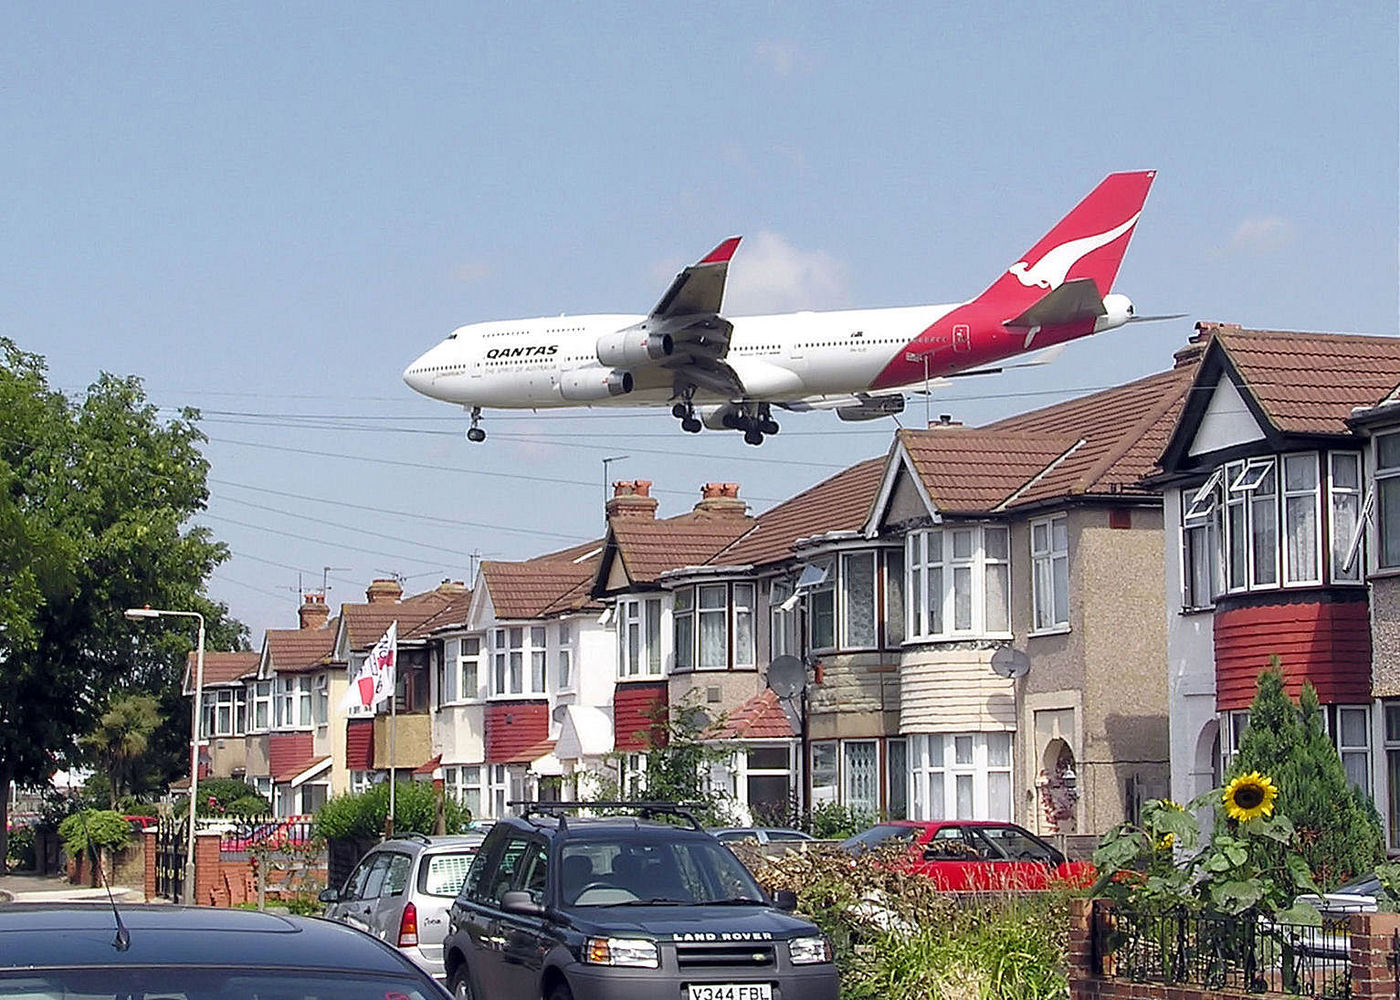 A Qantas Boeing 747-400 approaching runway 27L at London Heathrow Airport